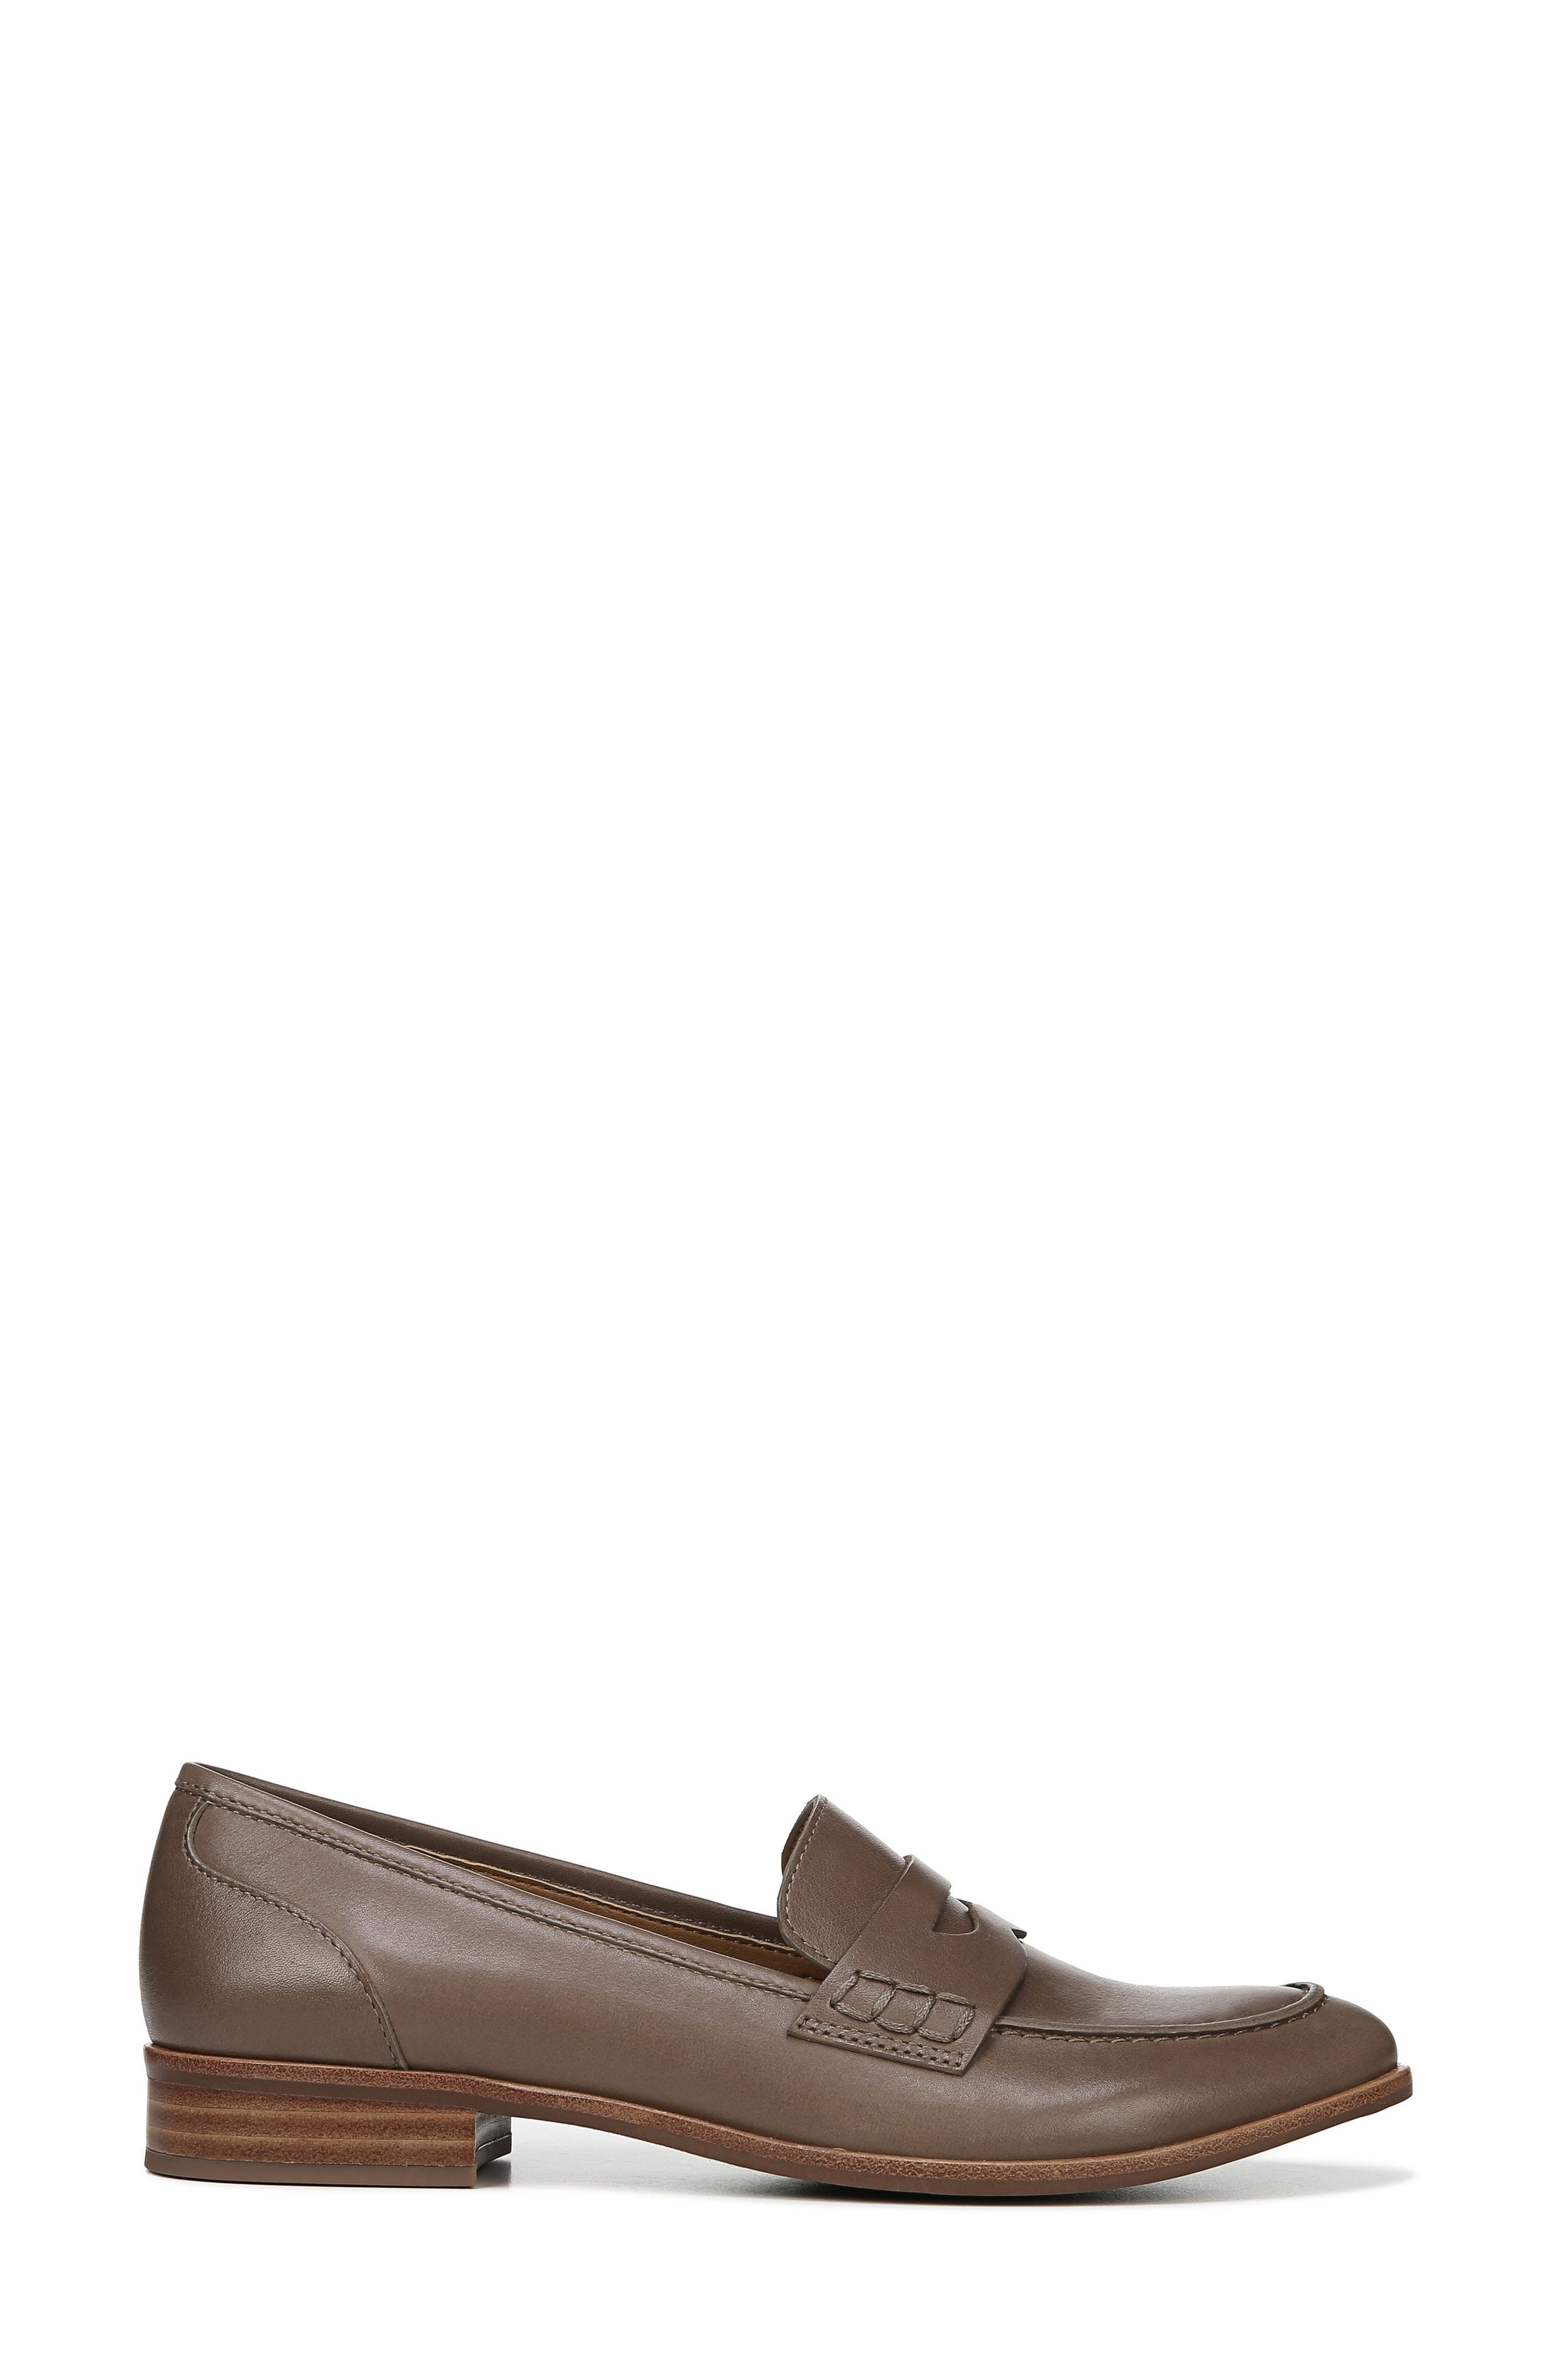 SARTO BY FRANCO SARTO,                             'Jolette' Penny Loafer,                             Alternate thumbnail 3, color,                             DARK PUTTY LEATHER